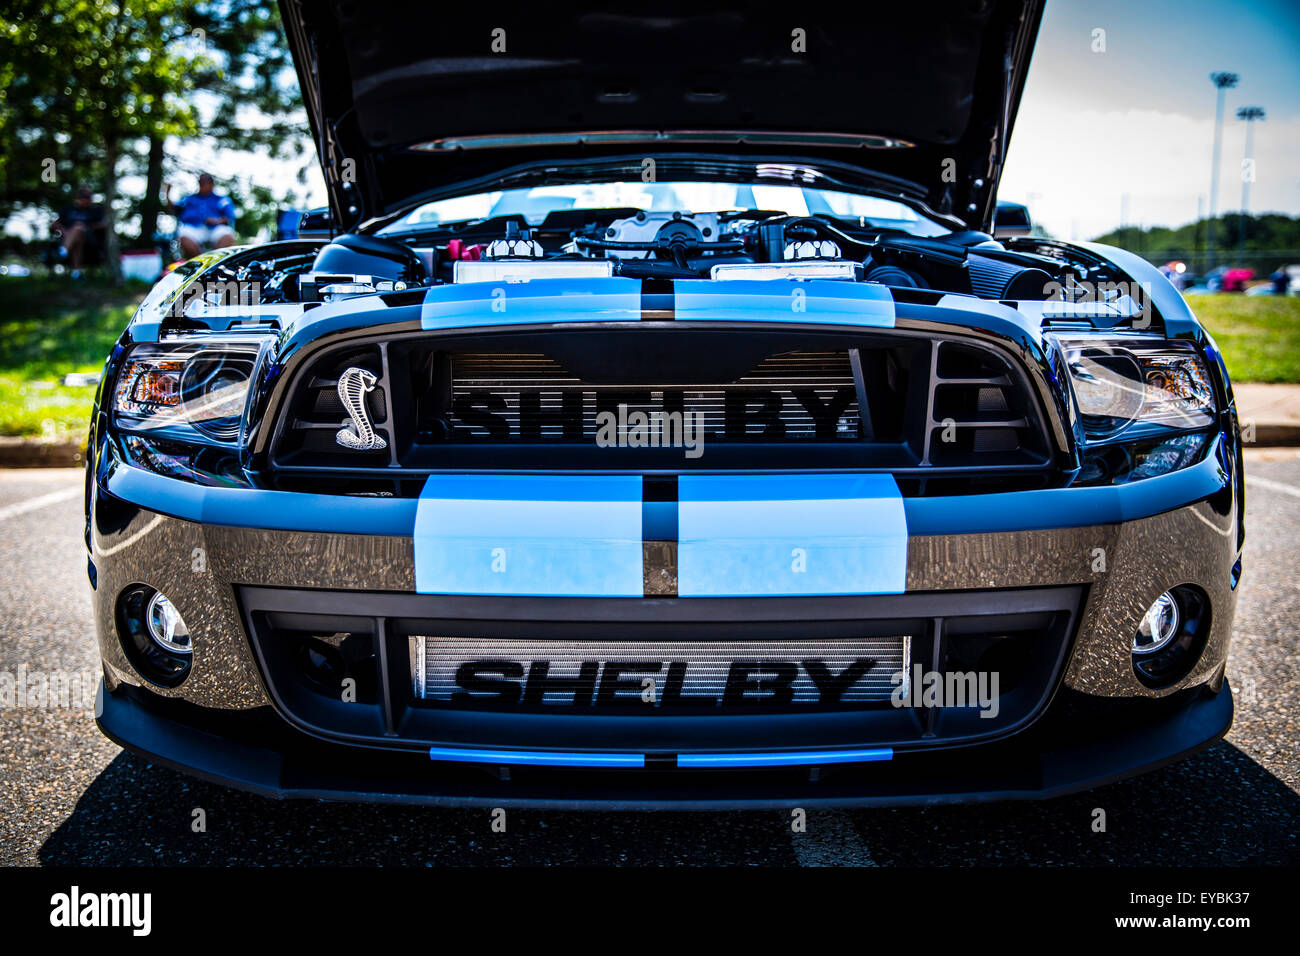 ford mustang shelby gt 500 stock photos ford mustang shelby gt 500 stock images alamy. Black Bedroom Furniture Sets. Home Design Ideas